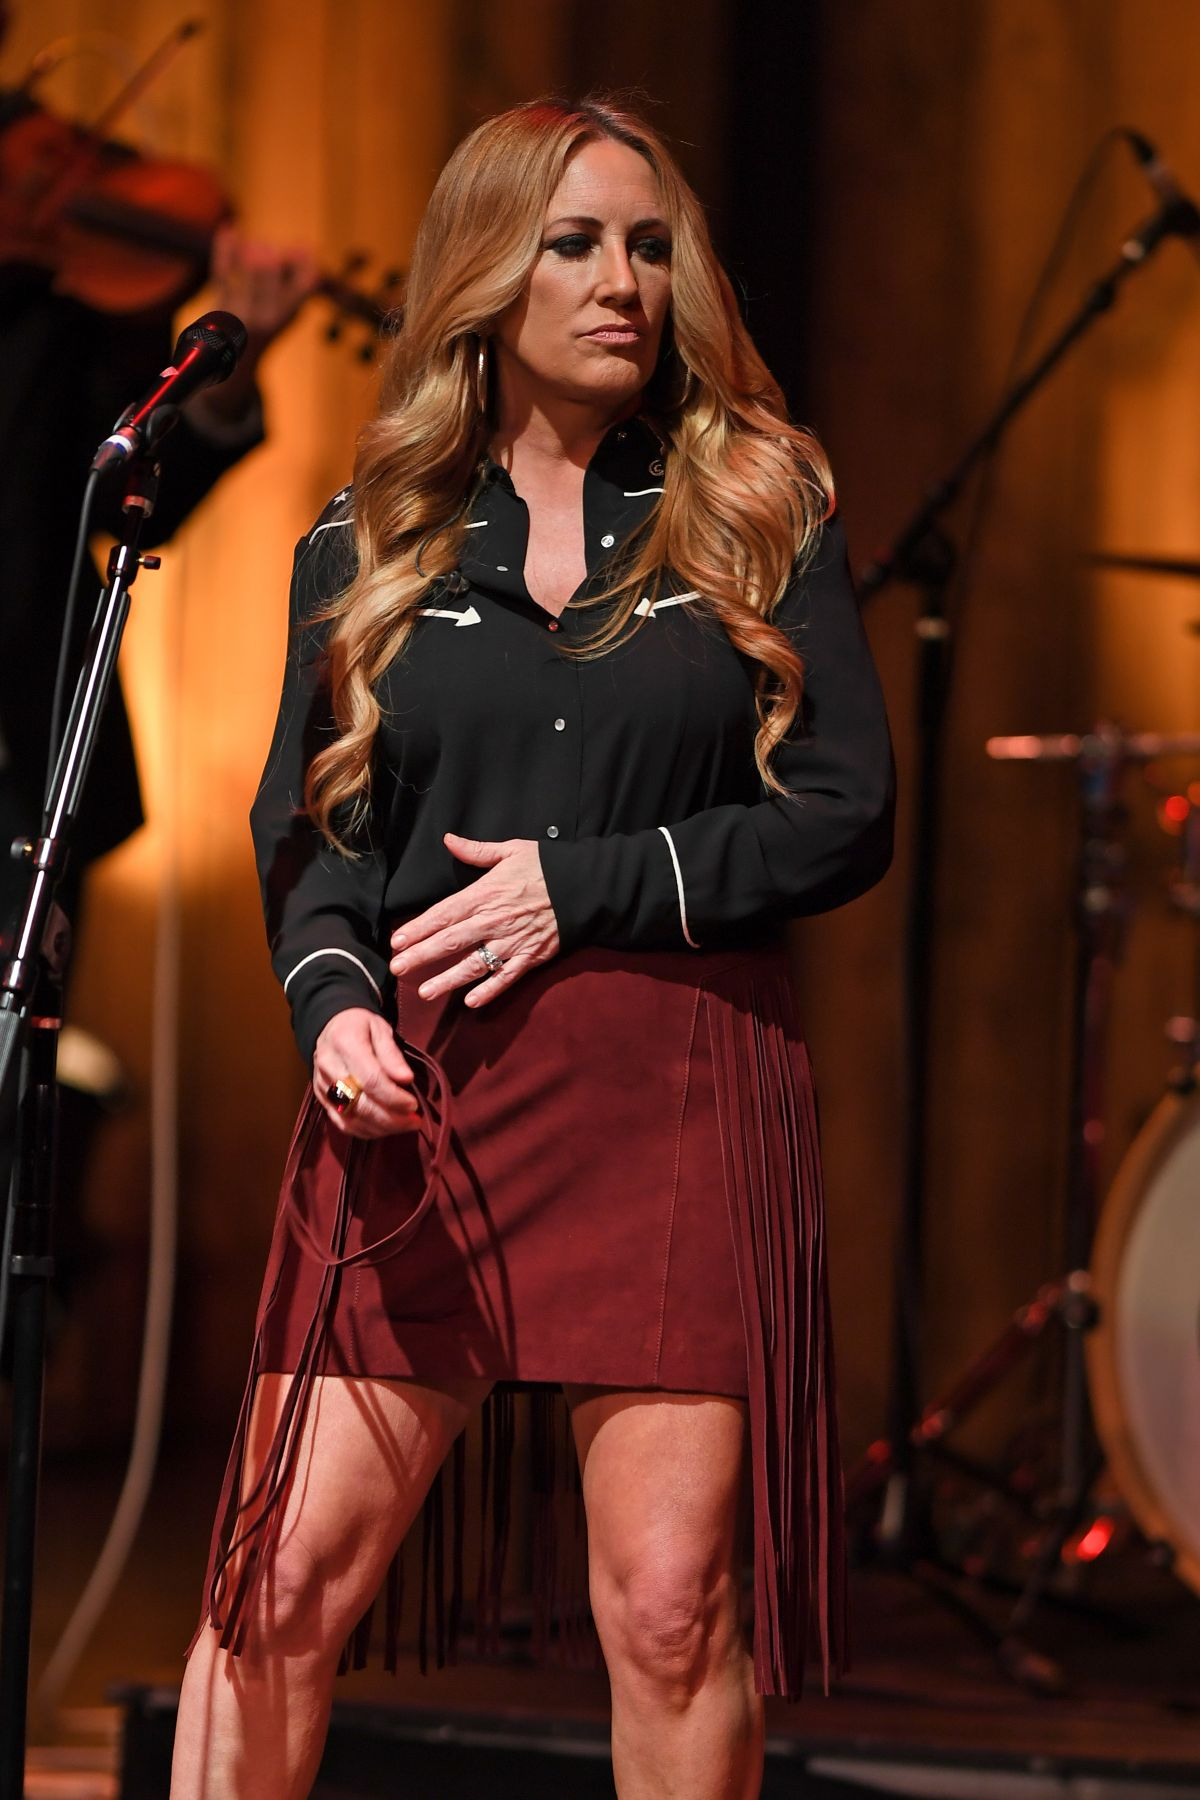 LEE ANN WOMACK Performs at Broward Center in Fort ... Emmys 2016